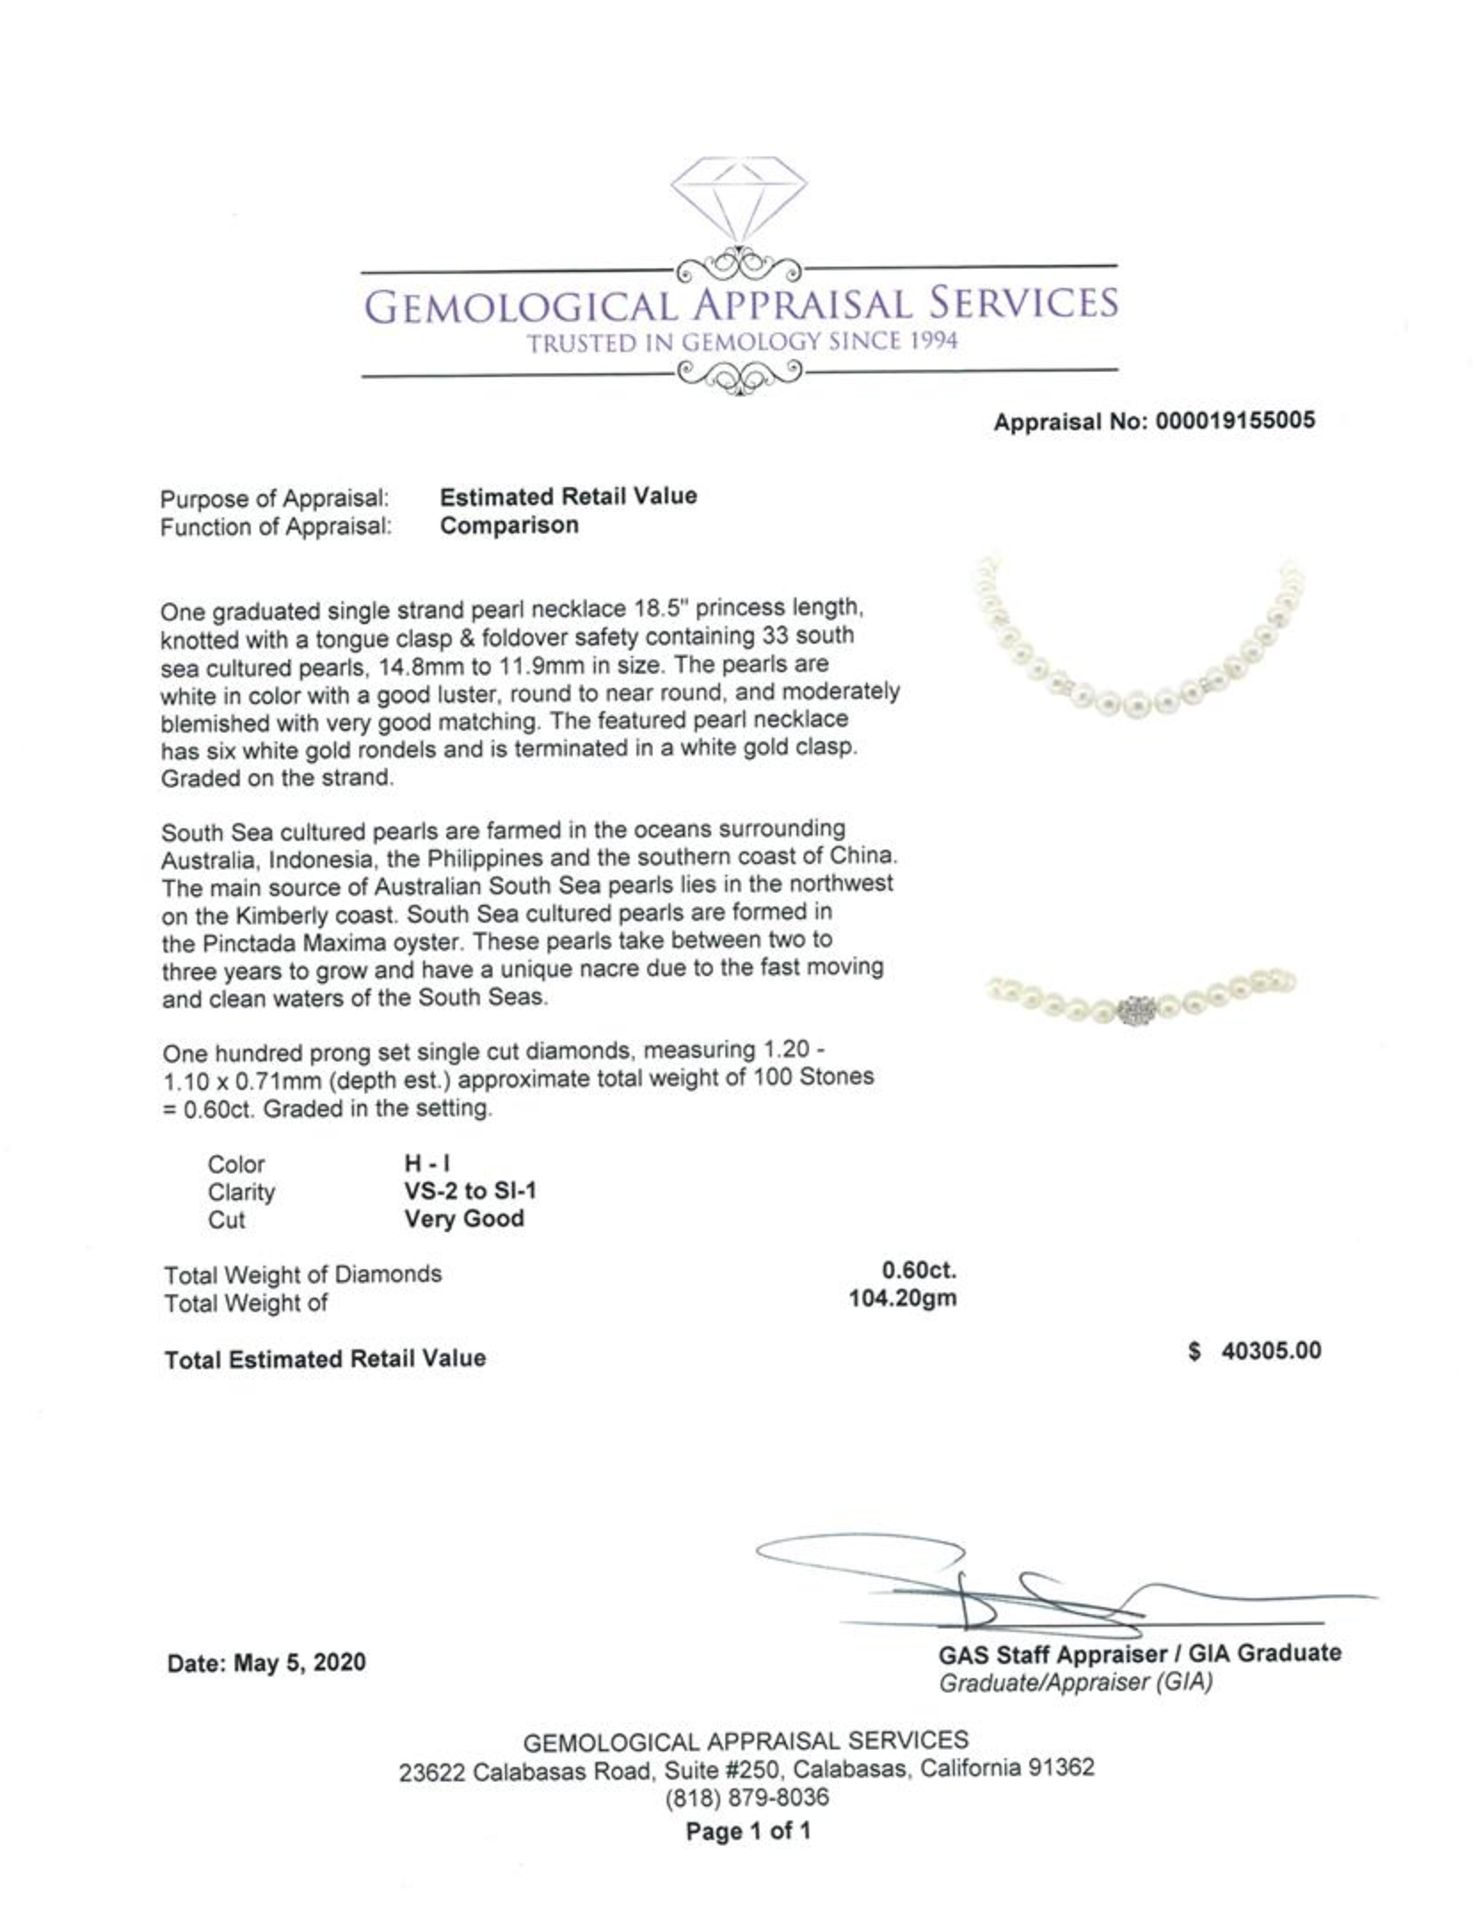 0.60 ctw Diamond and South Sea Pearl Necklace - Image 4 of 4